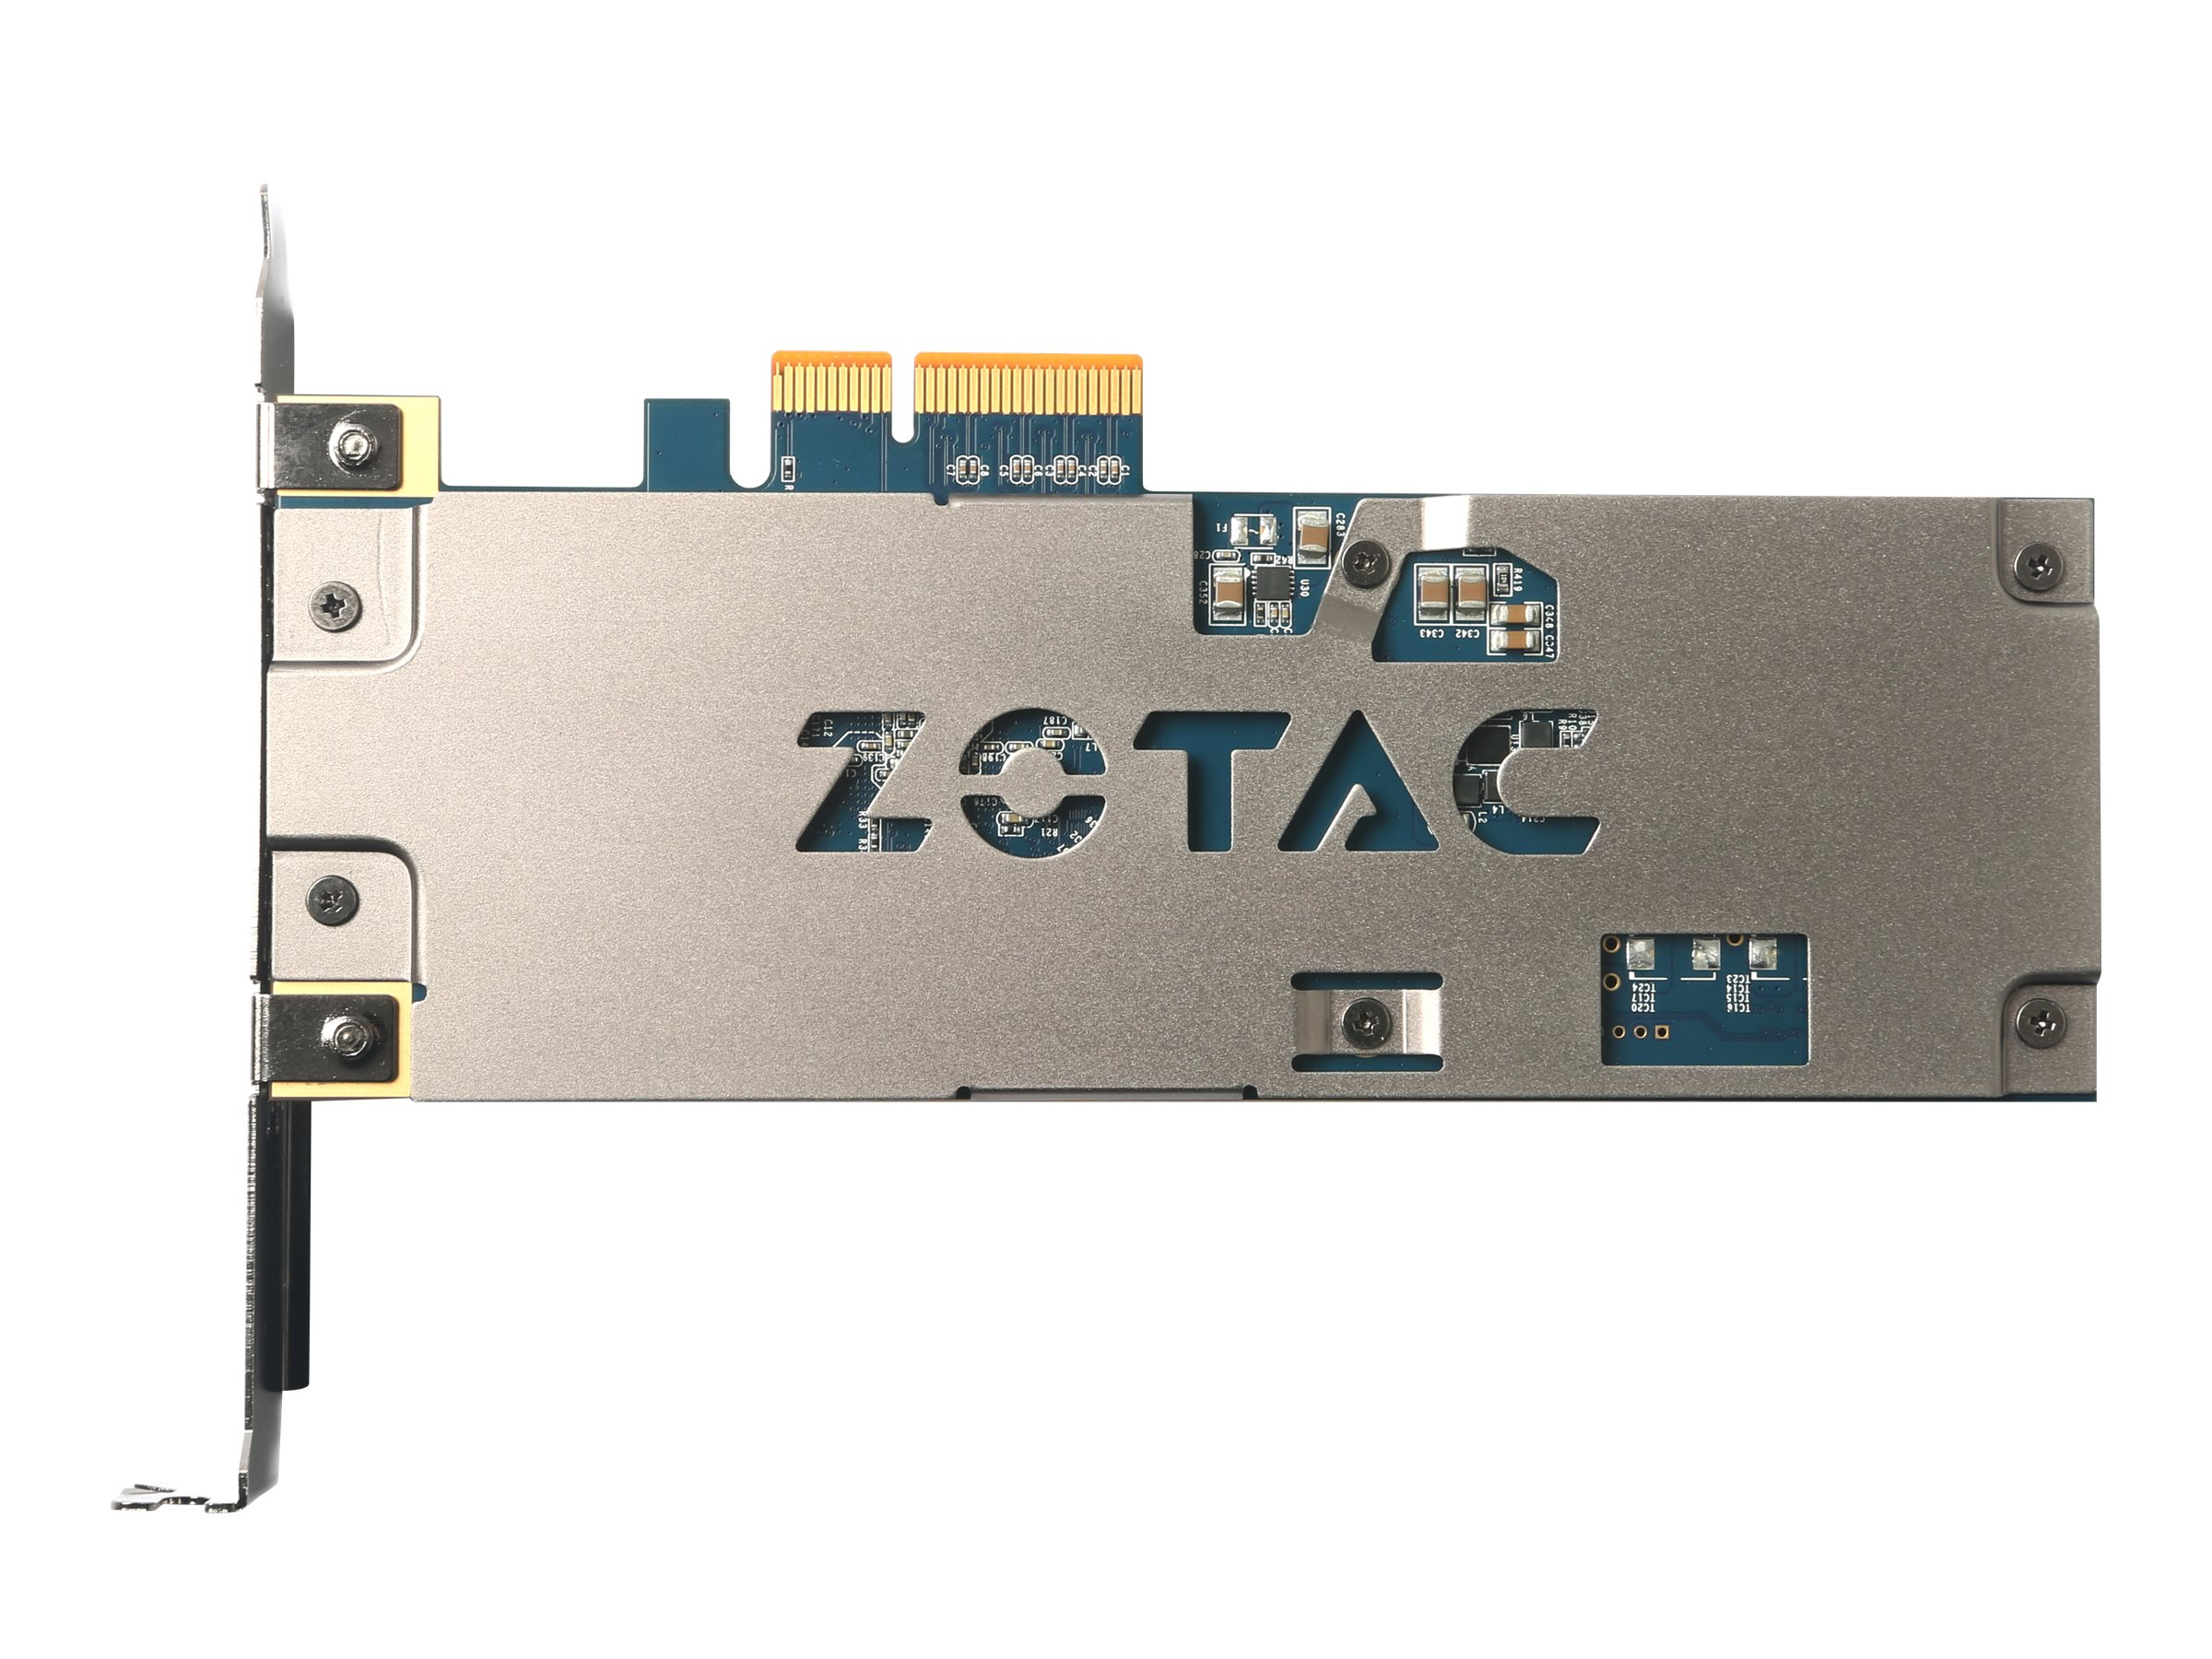 Zotac Zotac Sonix PCIe Solid State Drive, ZTSSD-PG3-480G-GE